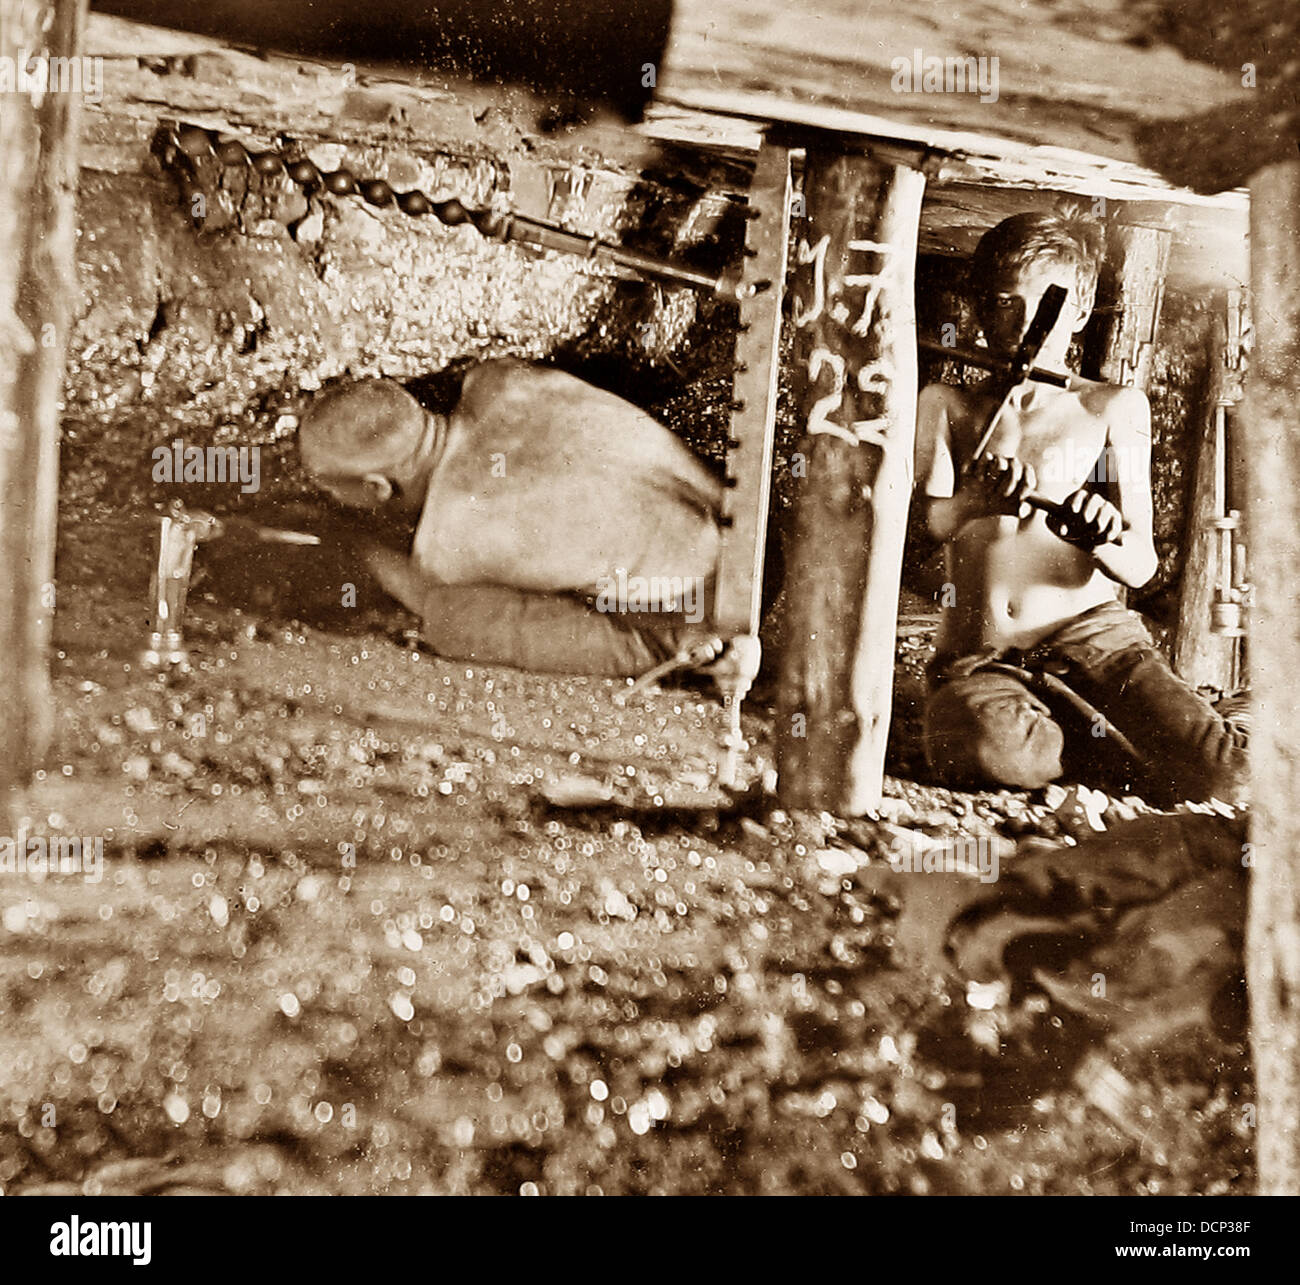 Miners drilling holes in a two foot seam early 1900s - Stock Image